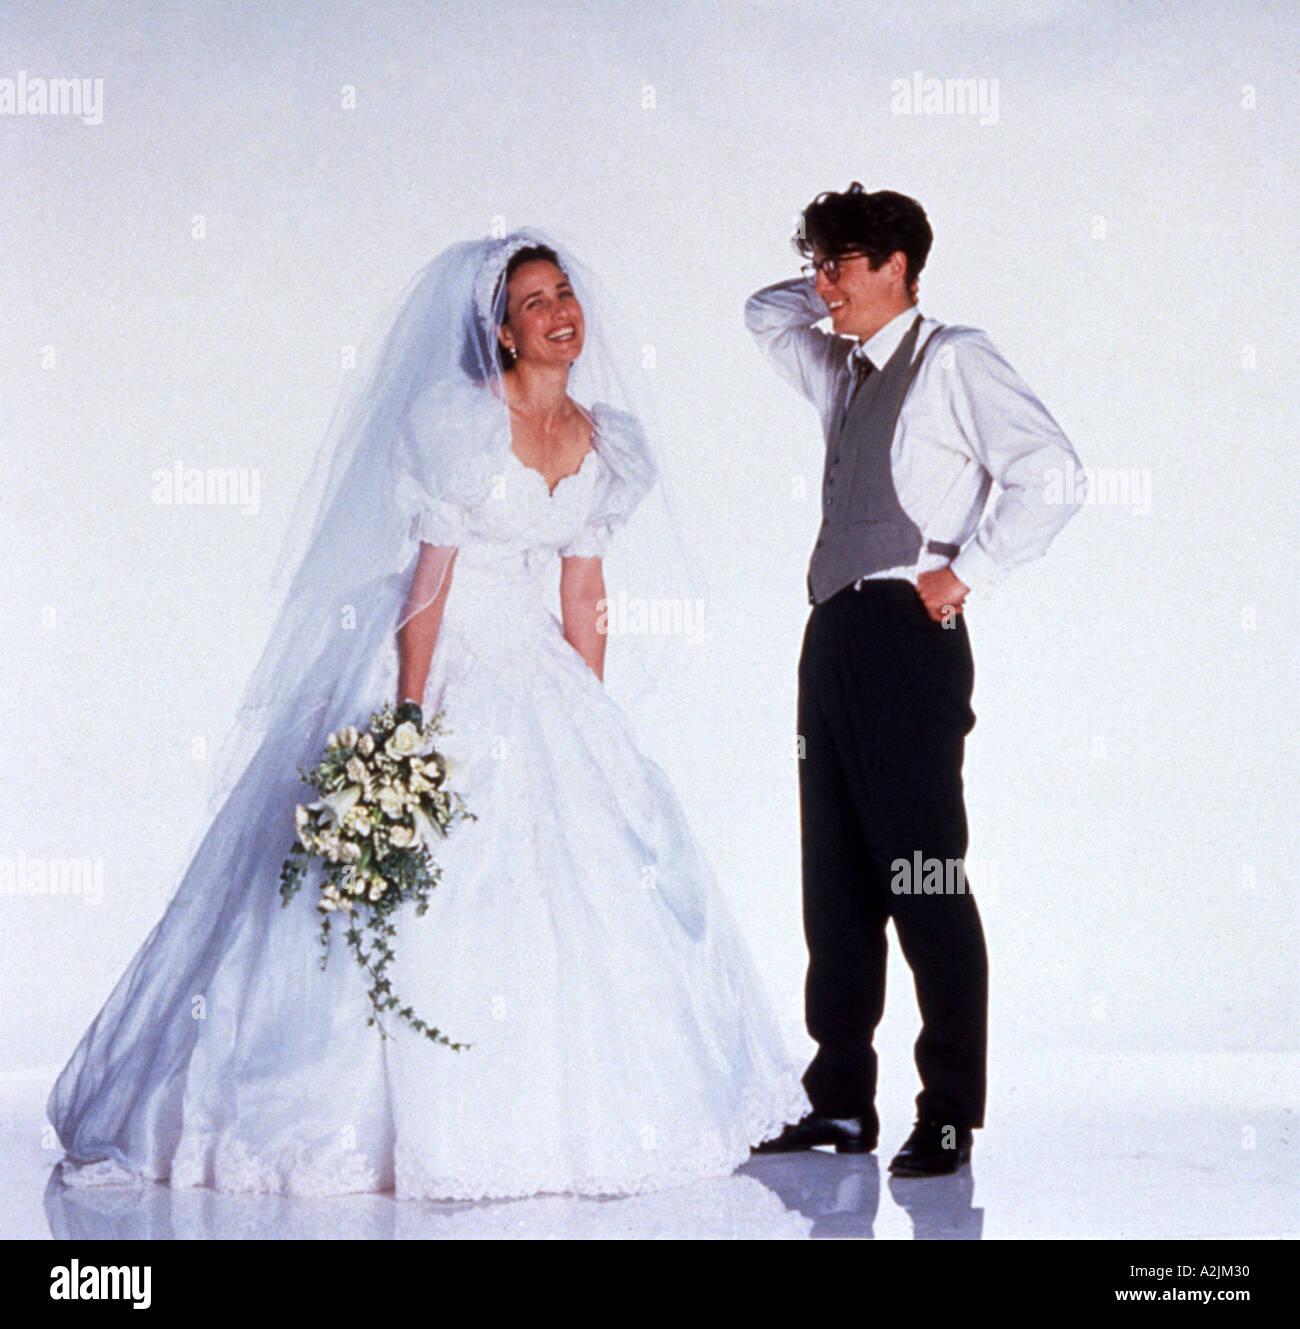 FOUR WEDDINGS AND A FUNERAL 1994 Polygram film starring Andie  MacDowell and Hugh Grant - Stock Image